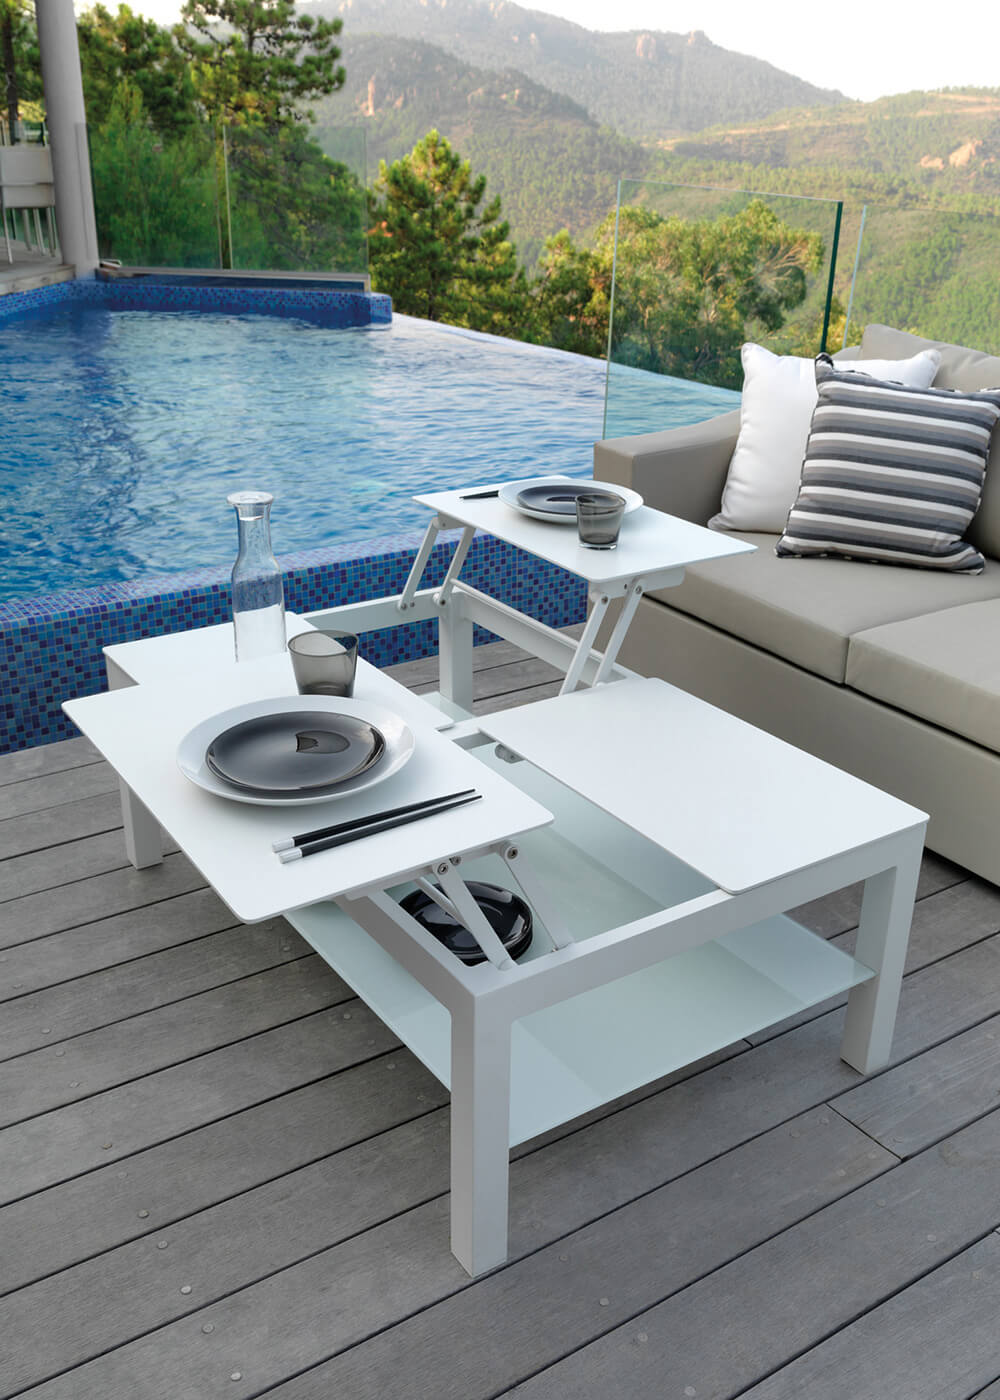 Outside Table And Chairs Umbrella